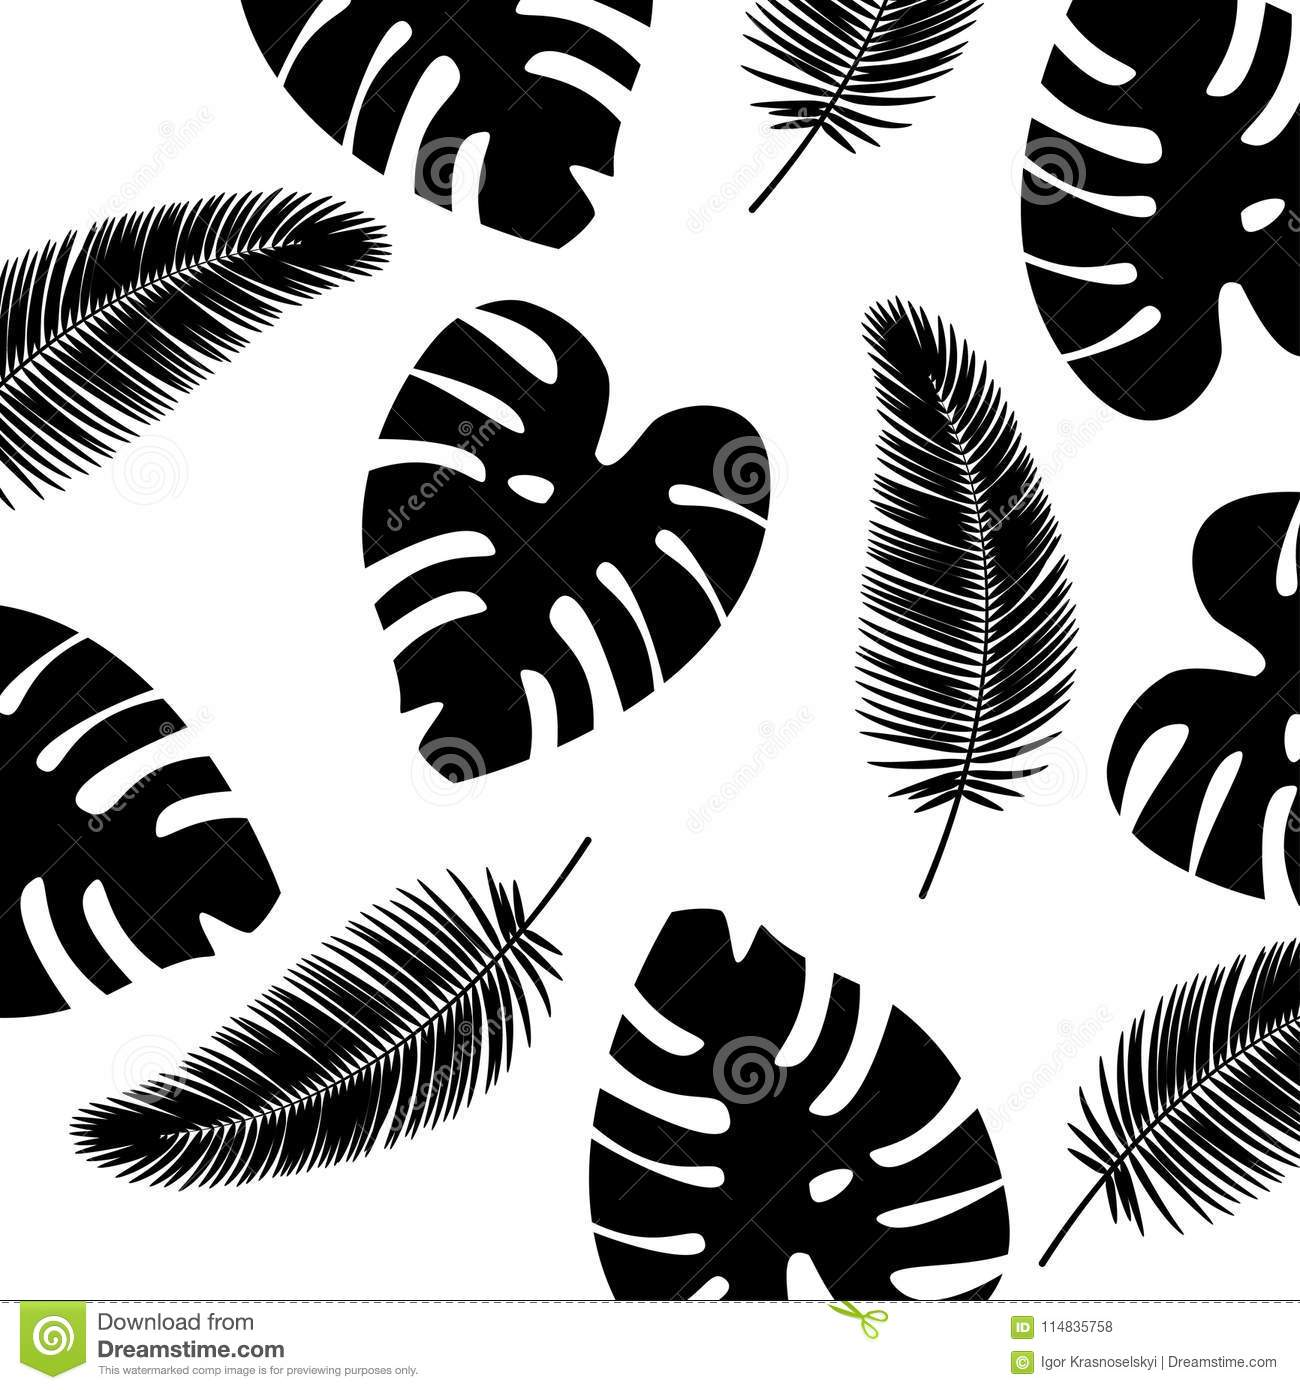 Vector Background Tropical Leaves Pattern Black And White Color Stock Vector Illustration Of Fabric Hawaii 114835758 The most common tropical leaf vector material is paper. https www dreamstime com vector background tropical leaves pattern black white color black palm leaf vector background tropical leaves pattern black image114835758